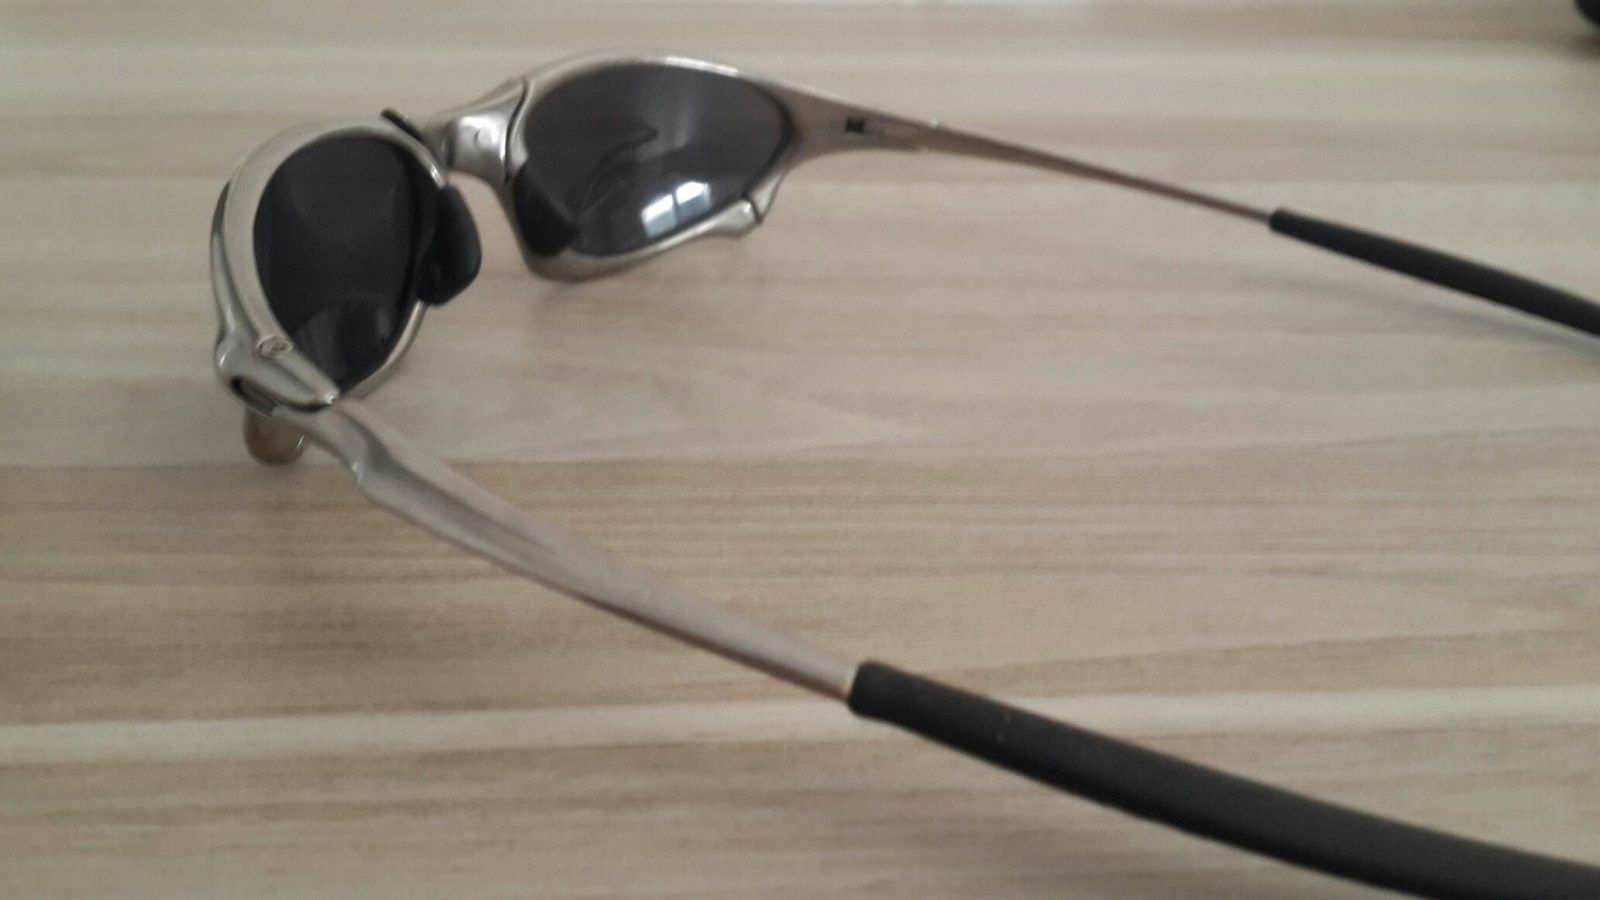 Oakley Penny Polished No Serial Number - 20141015_121725_resized.jpg